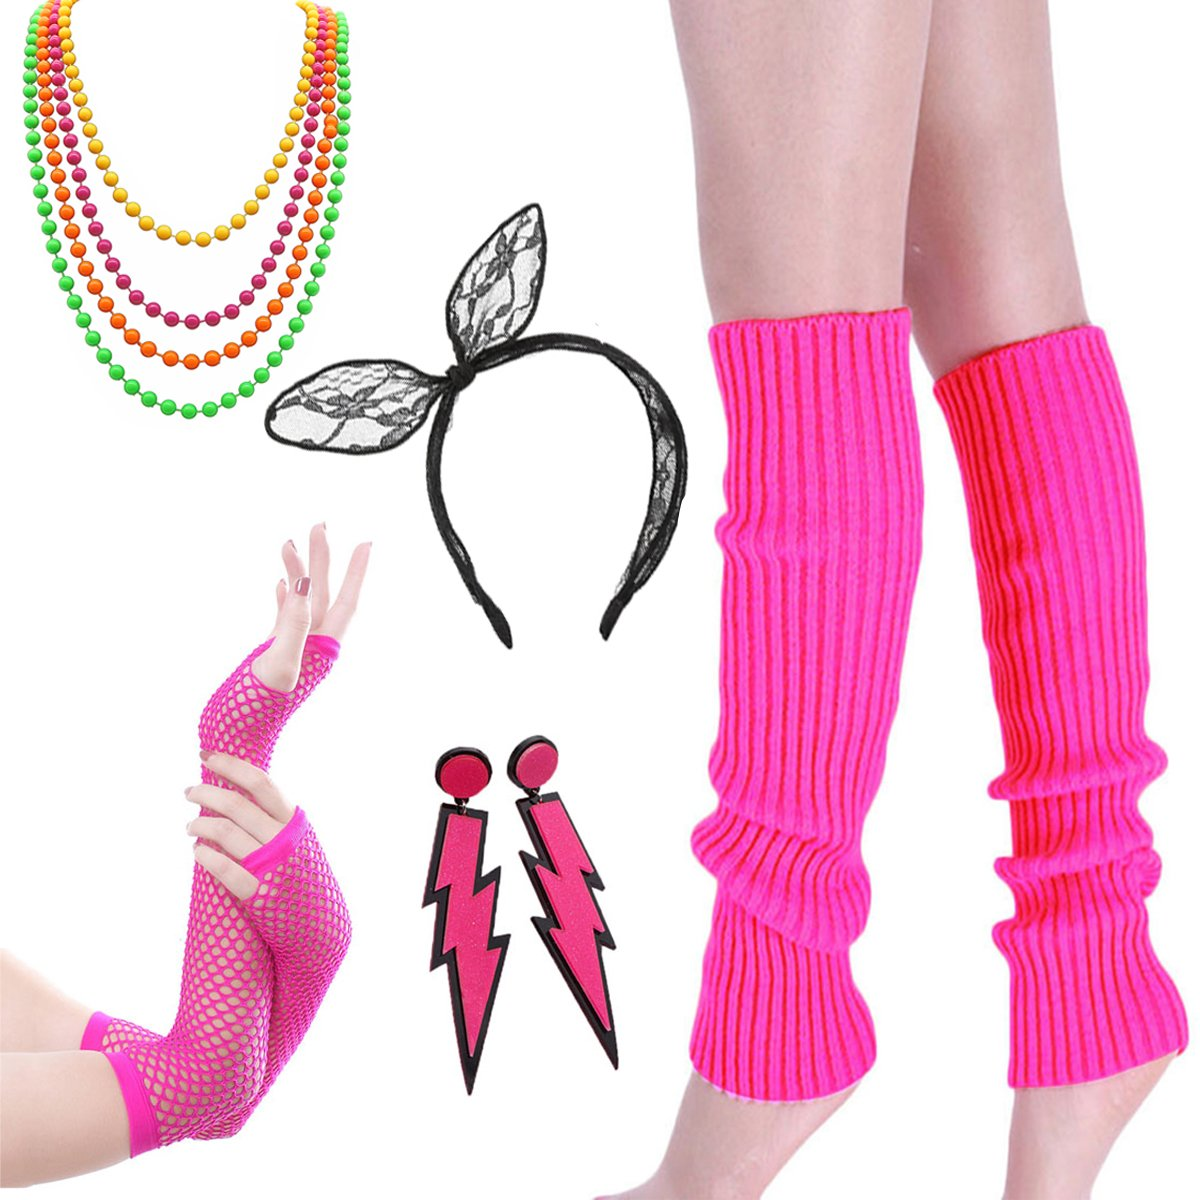 80s Outfit - Womens 80s Fancy Outfit Costumes Accessories Set,Leg Warmers Fishnet Gloves Neon Earrings, Bracelet and Beads Color2 (Pink) One Size